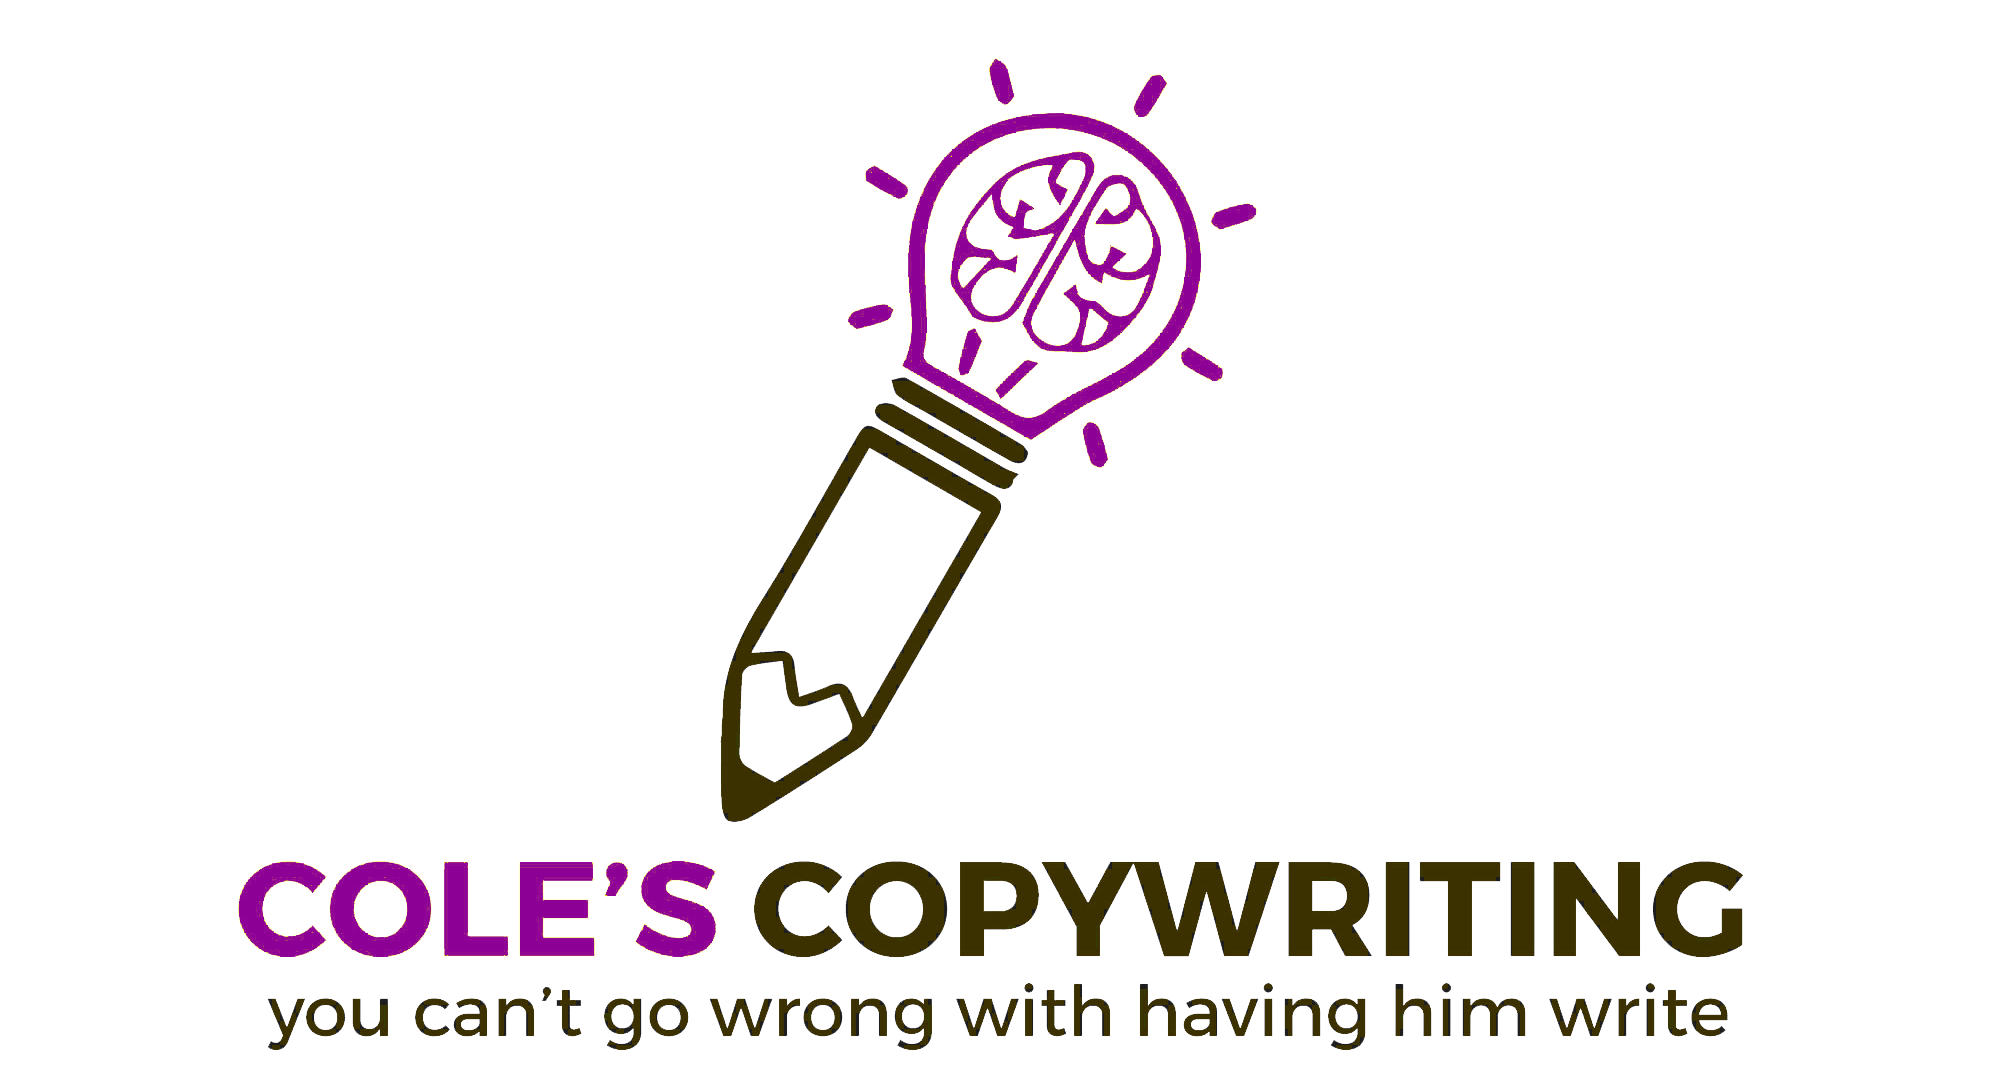 Cole's Copywriting